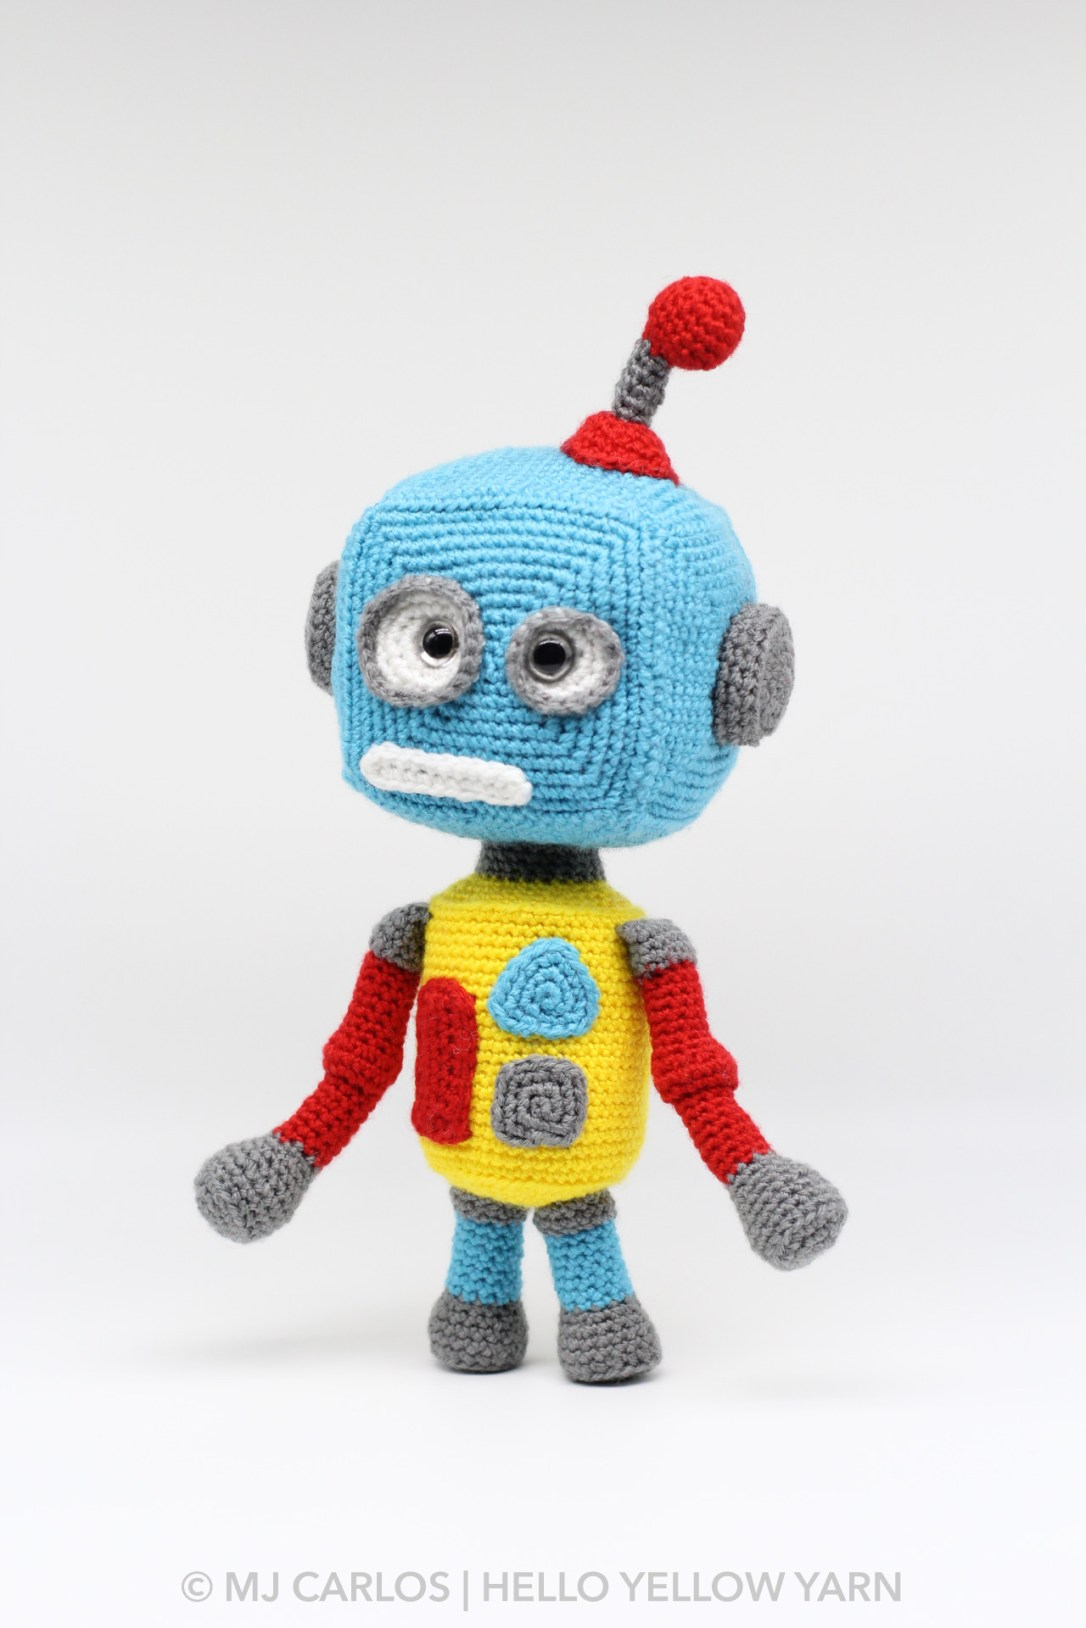 Domo Arigato, for 10 Free #Crochet Robot Patterns! | Free crochet ... | 1628x1086